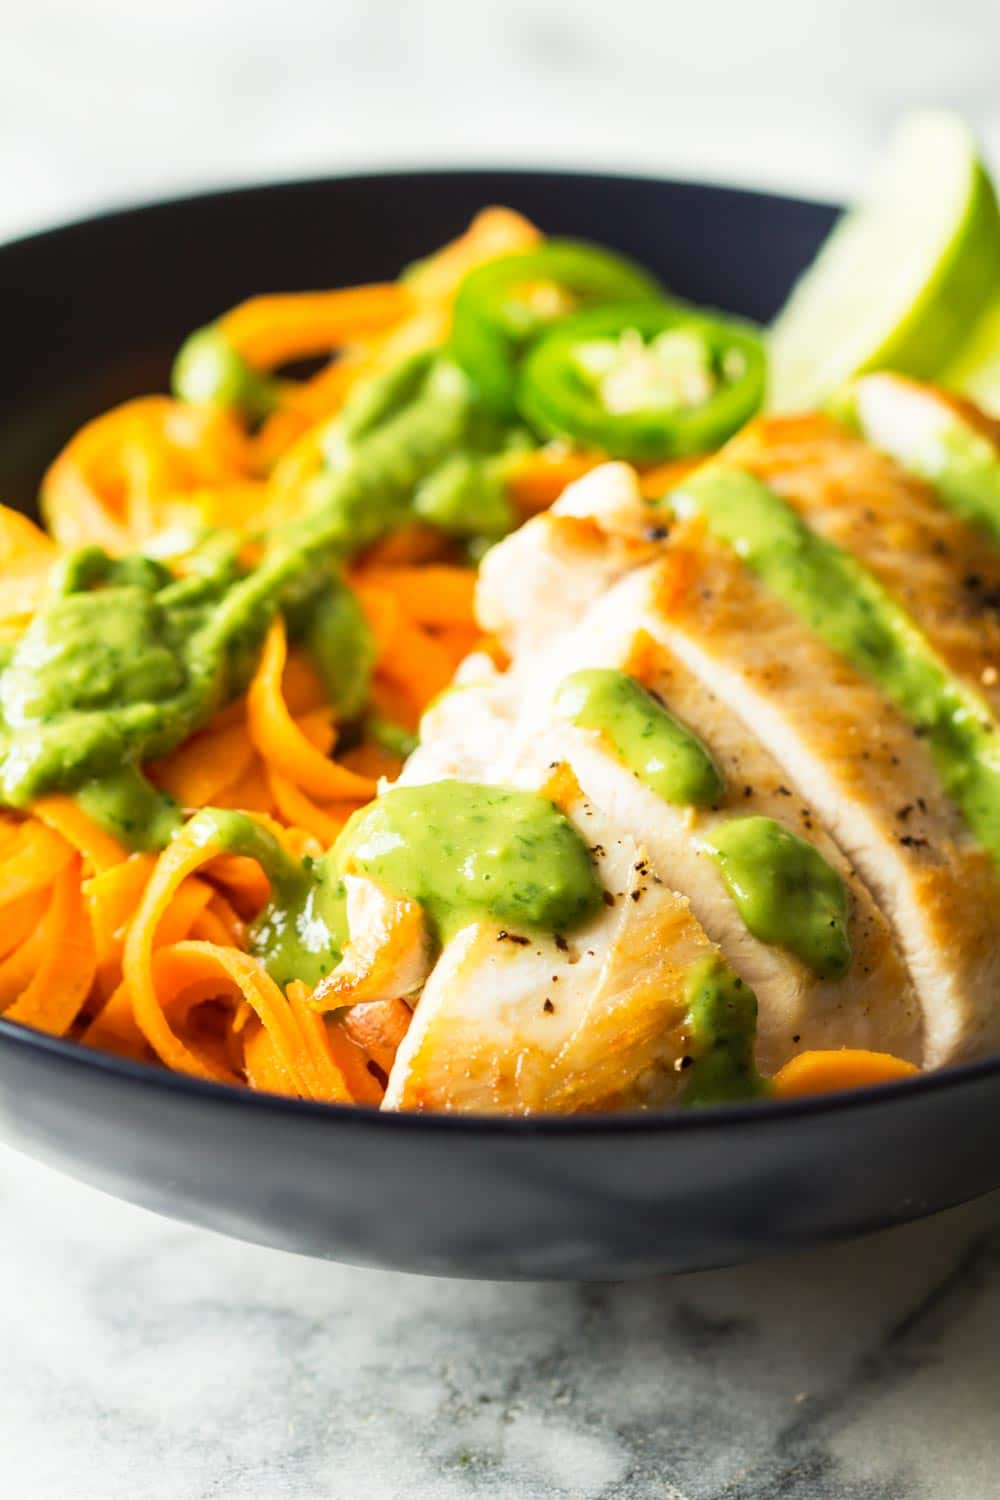 Texture of sliced chicken breast with sweet potato noodles on the side, topped with cilantro and avocado dressing.